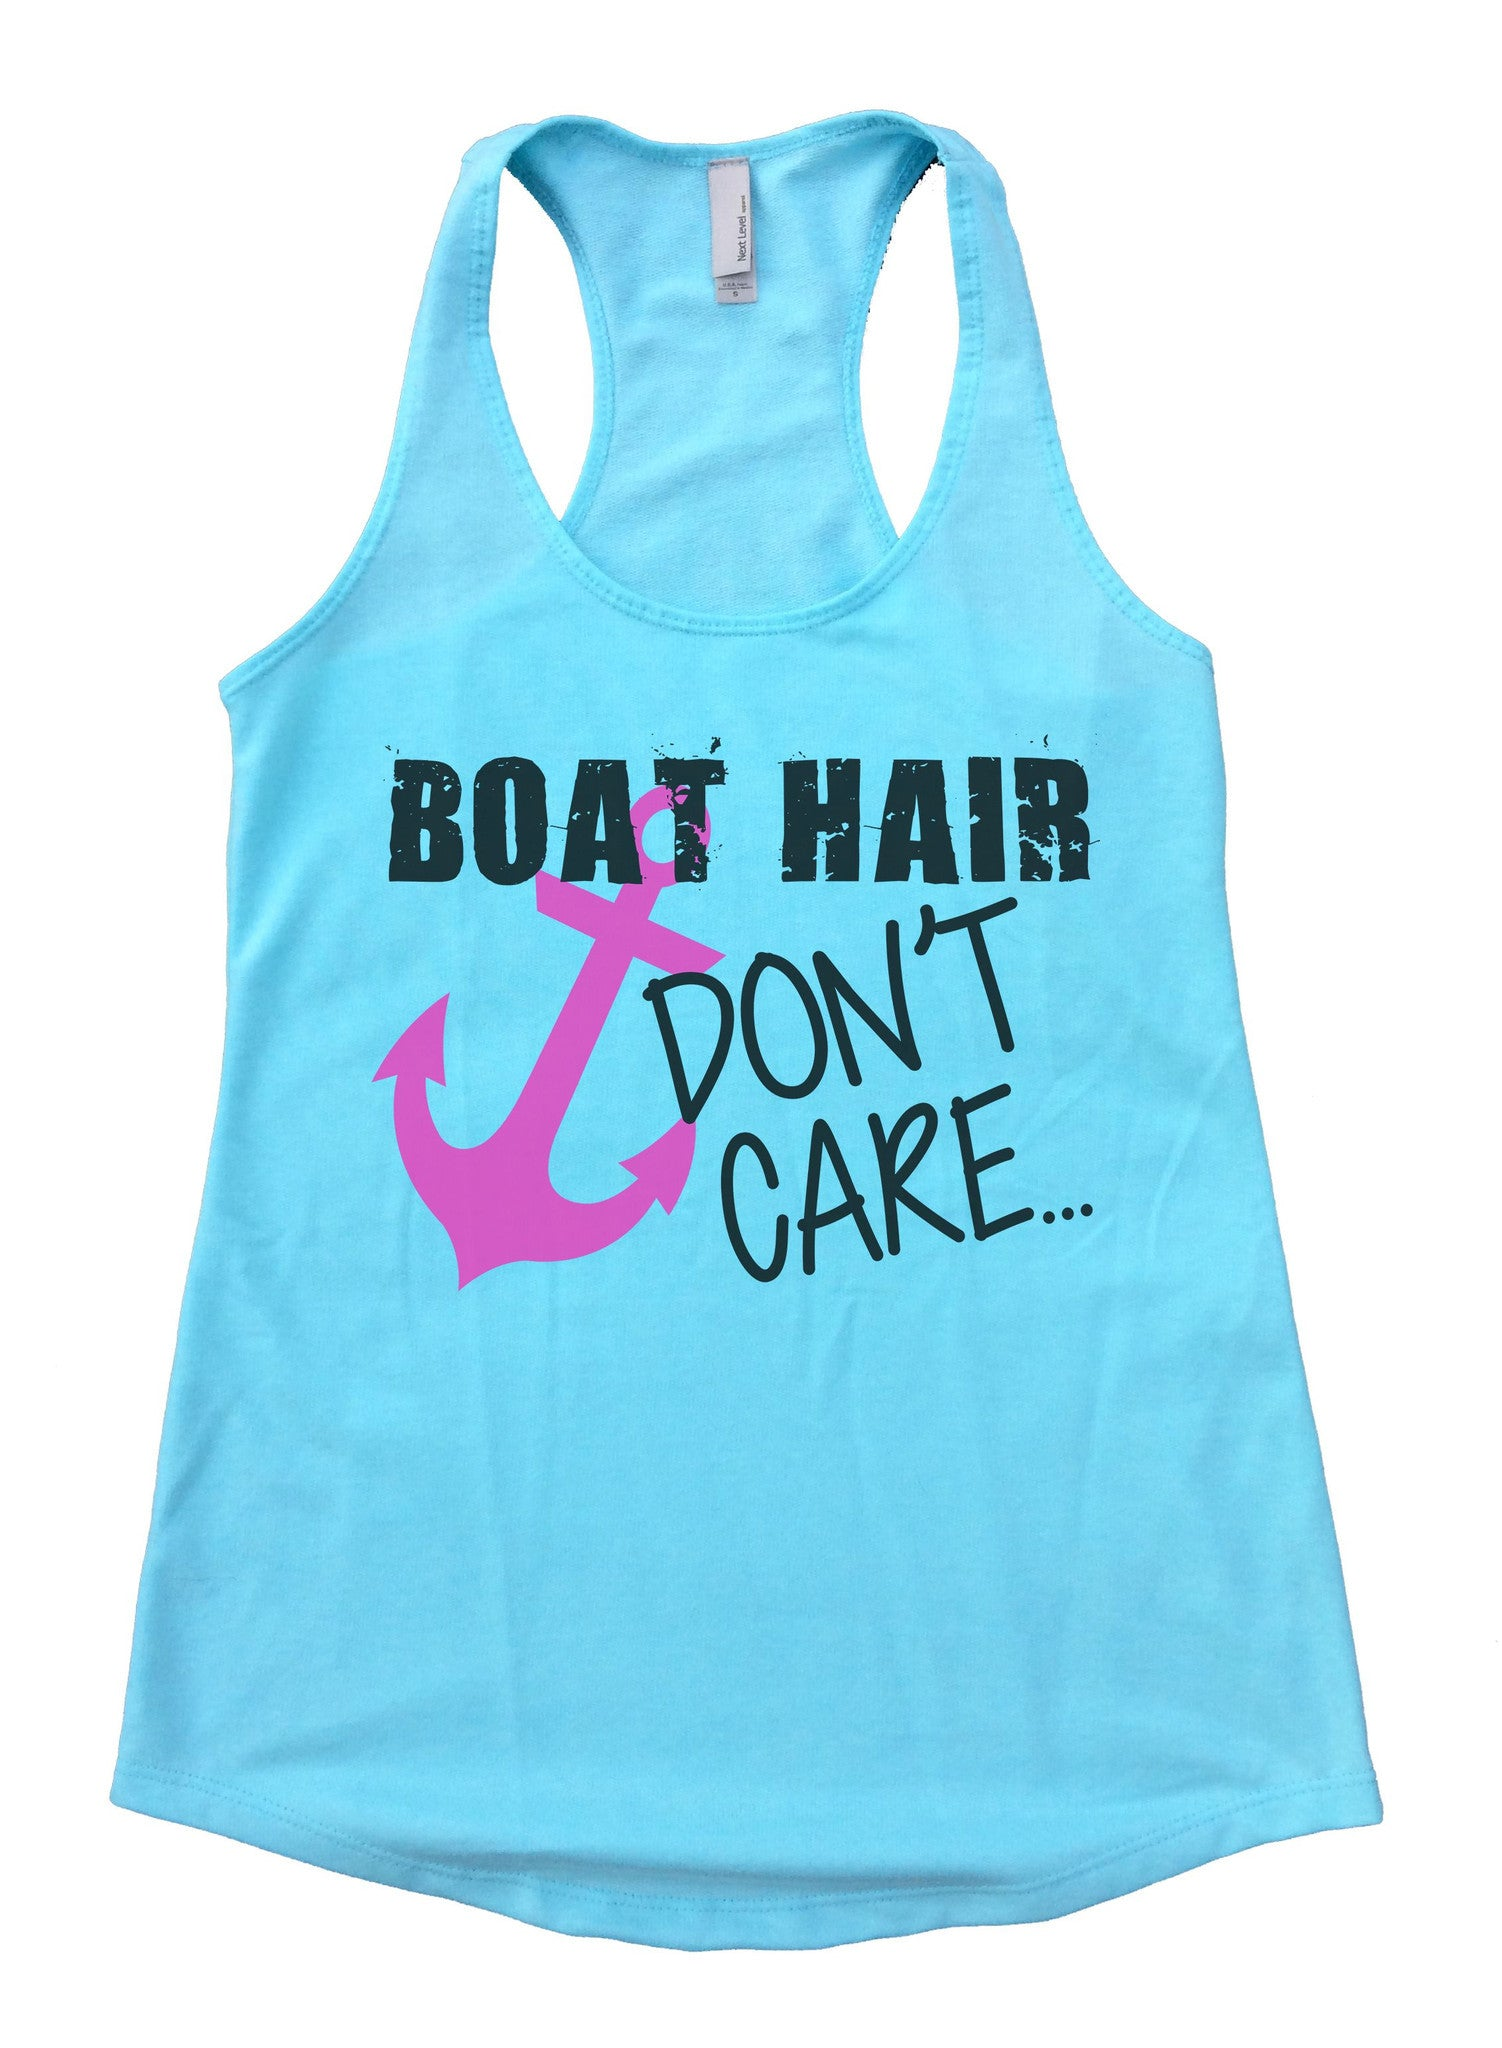 Boat Hair Don't Care Womens Workout Tank Top F691 - Funny Shirts Tank Tops Burnouts and Triblends  - 2